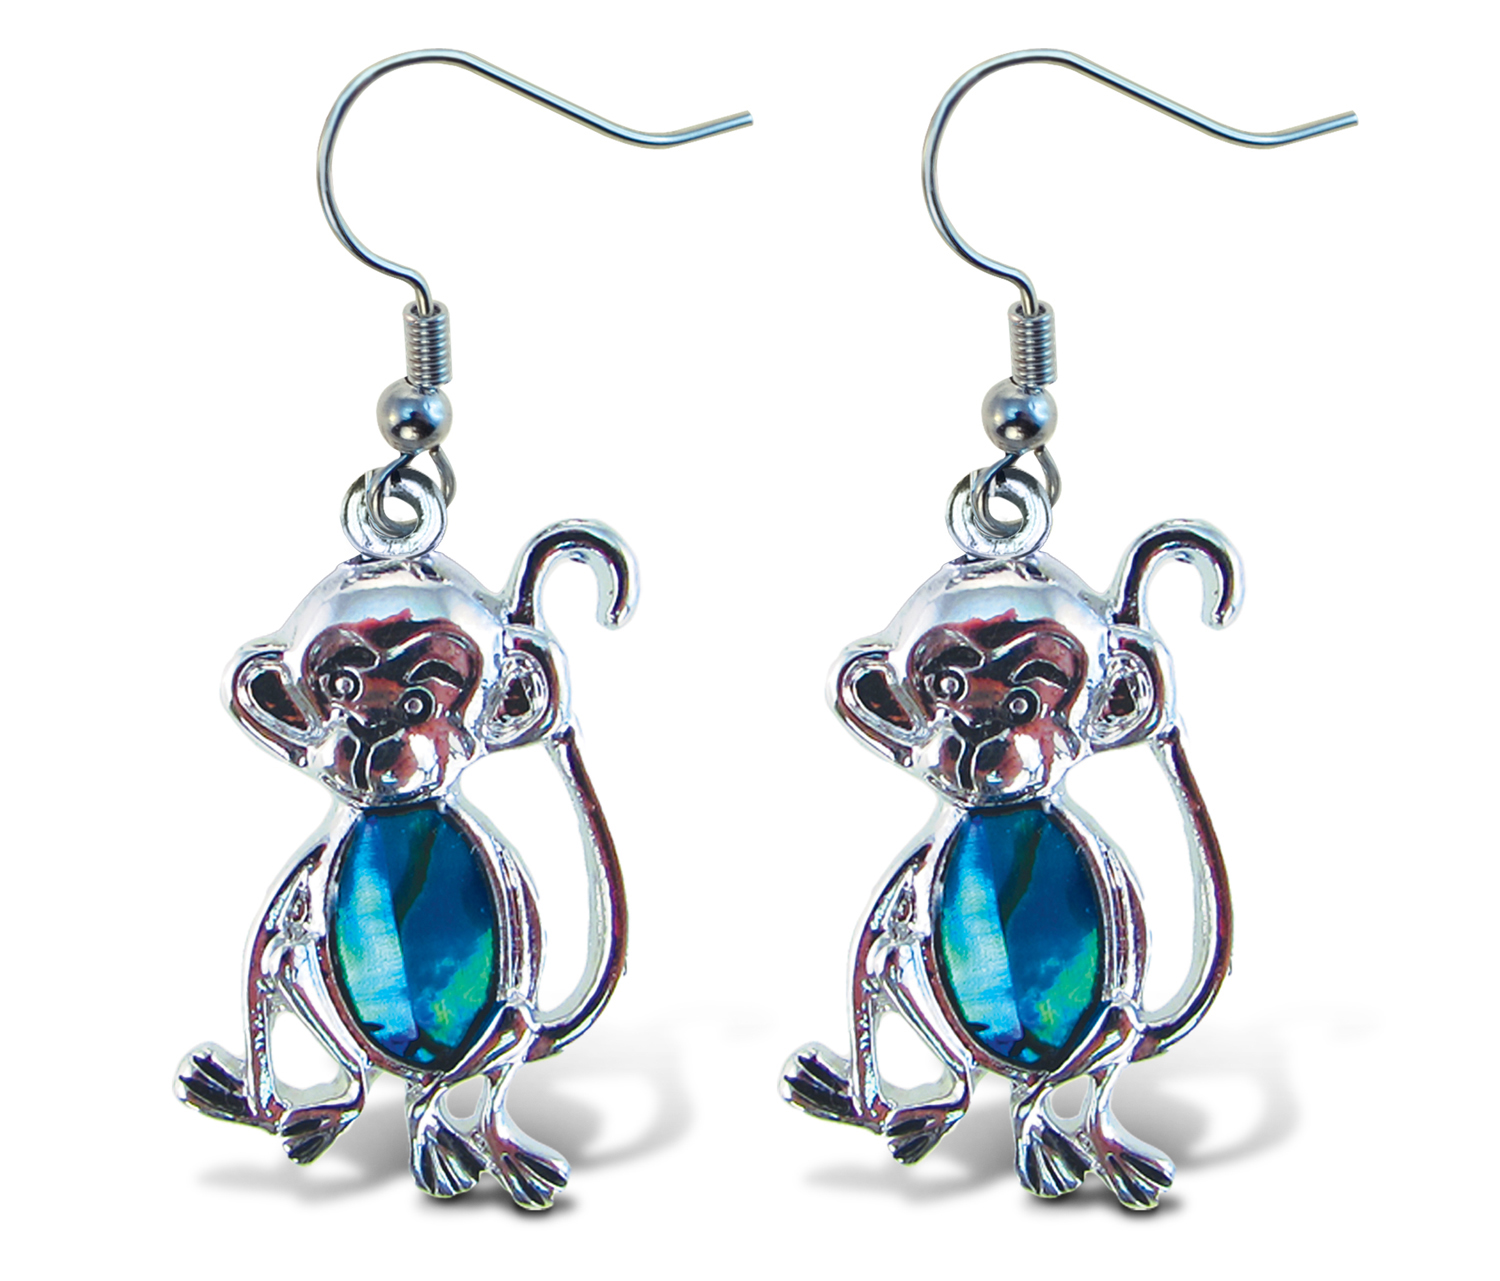 Aqua JEWELRY Earrings Dangle Post Fish Hook